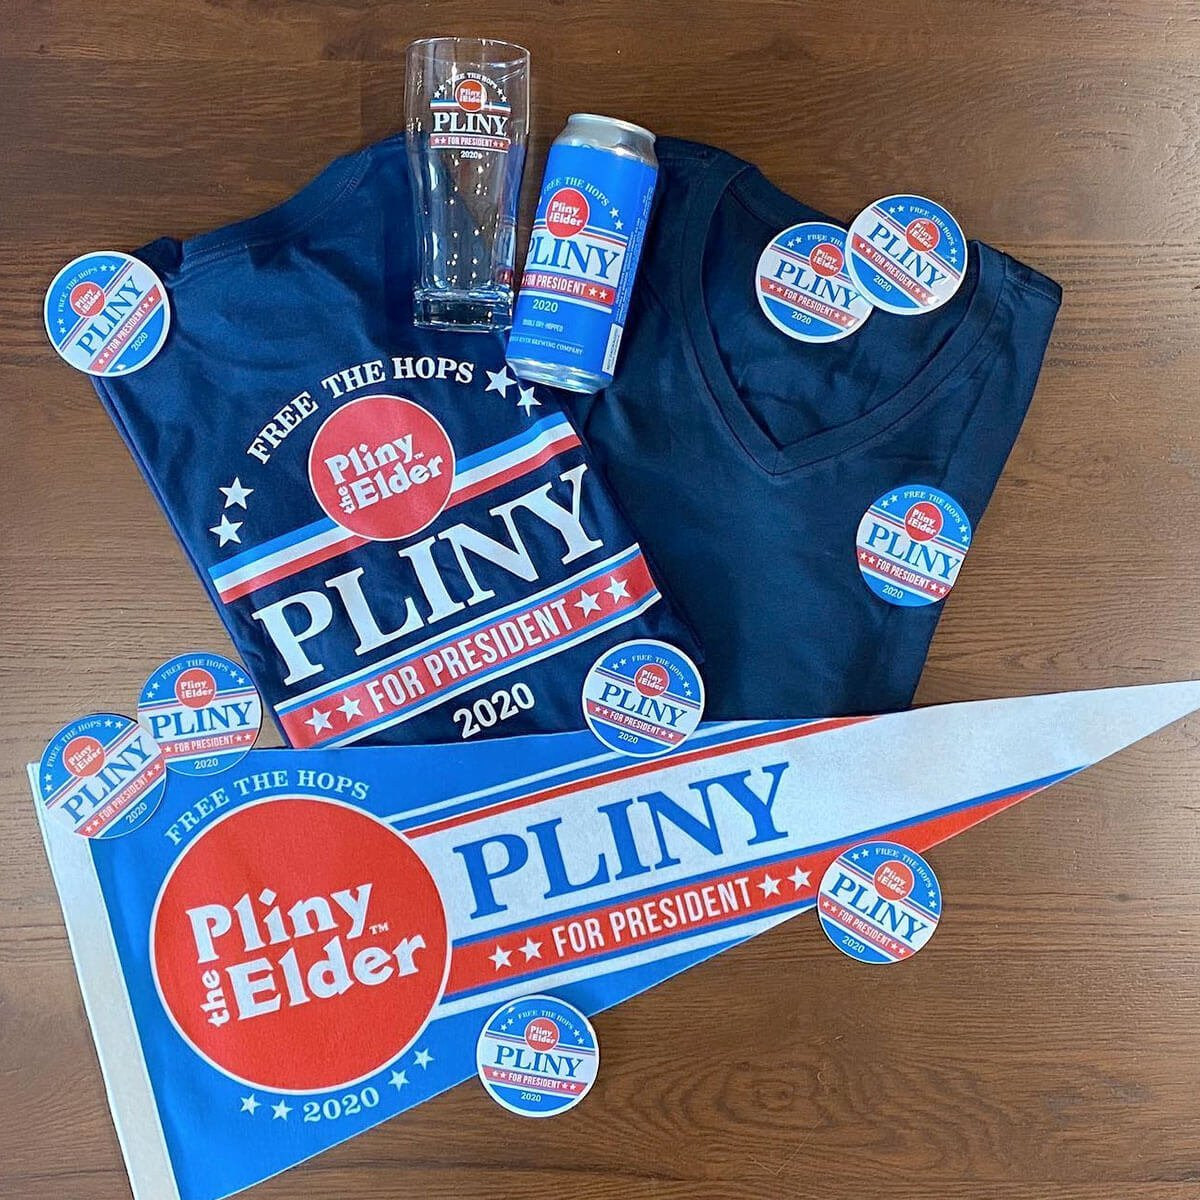 Pliny for President tie-in swag also available for purchase from Russian River Brewing Company